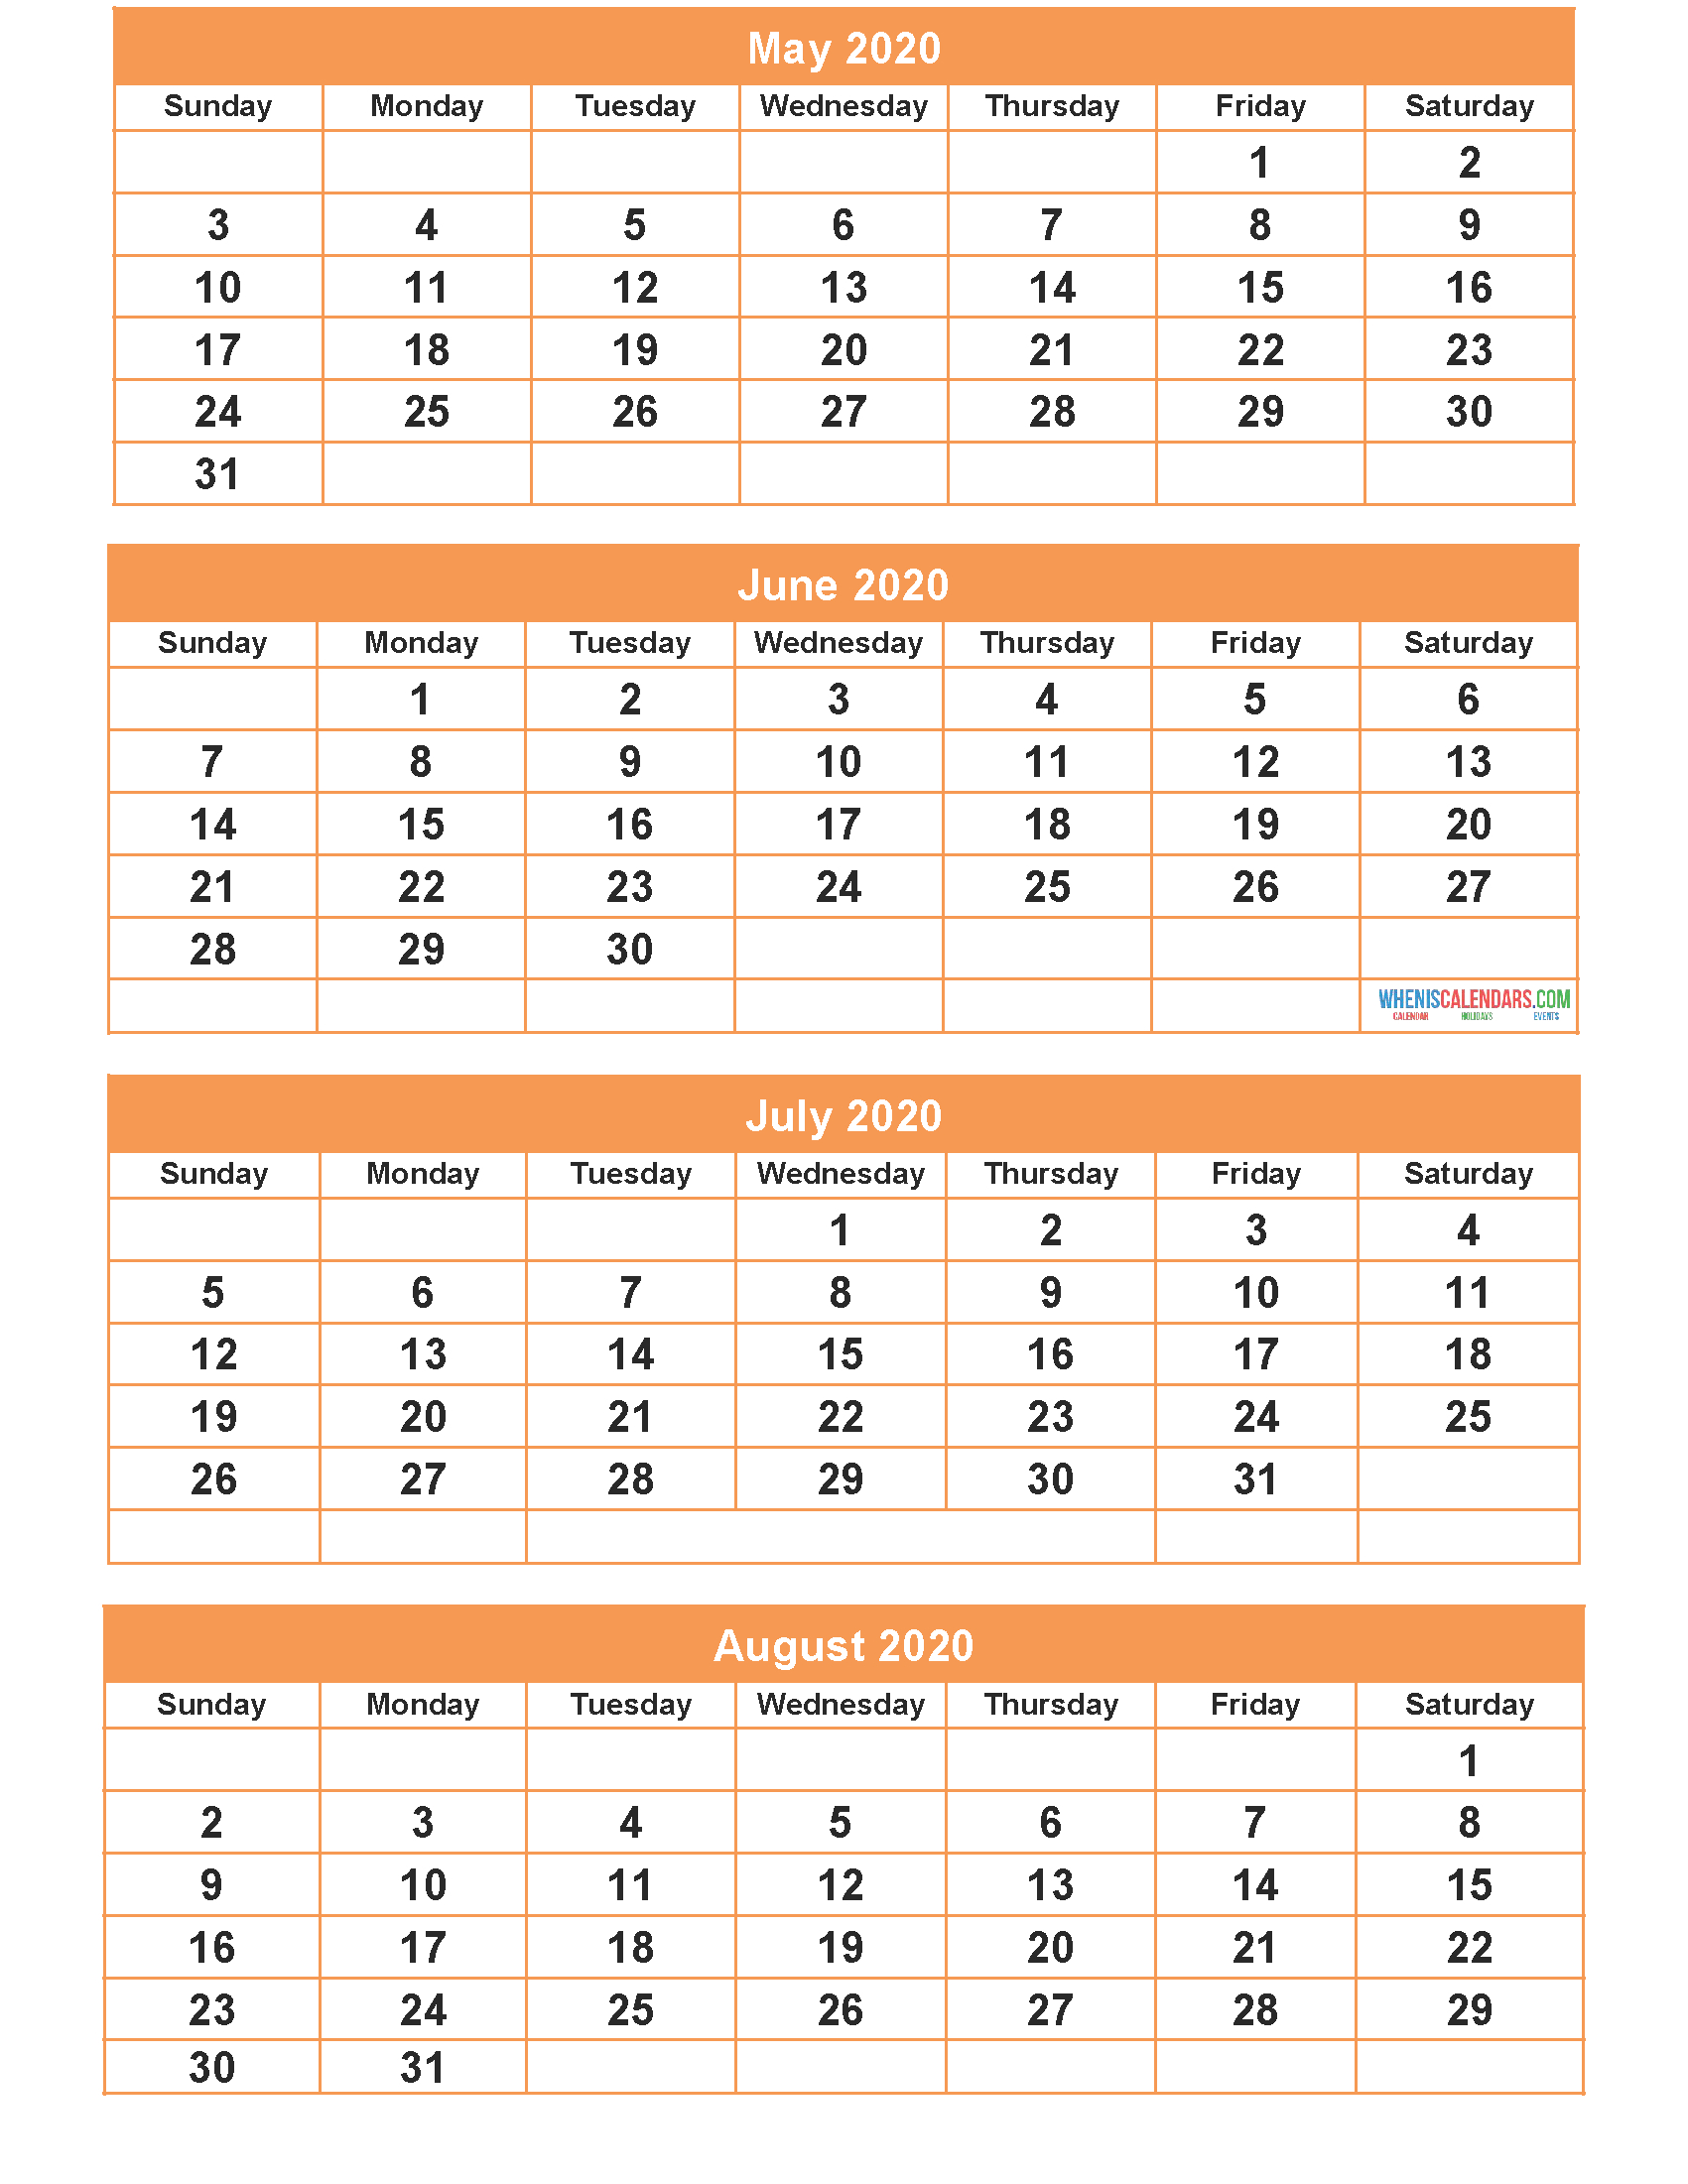 May June July August 2020 Calendar With Holidays Printable for July And August 2020 Calendar Printable